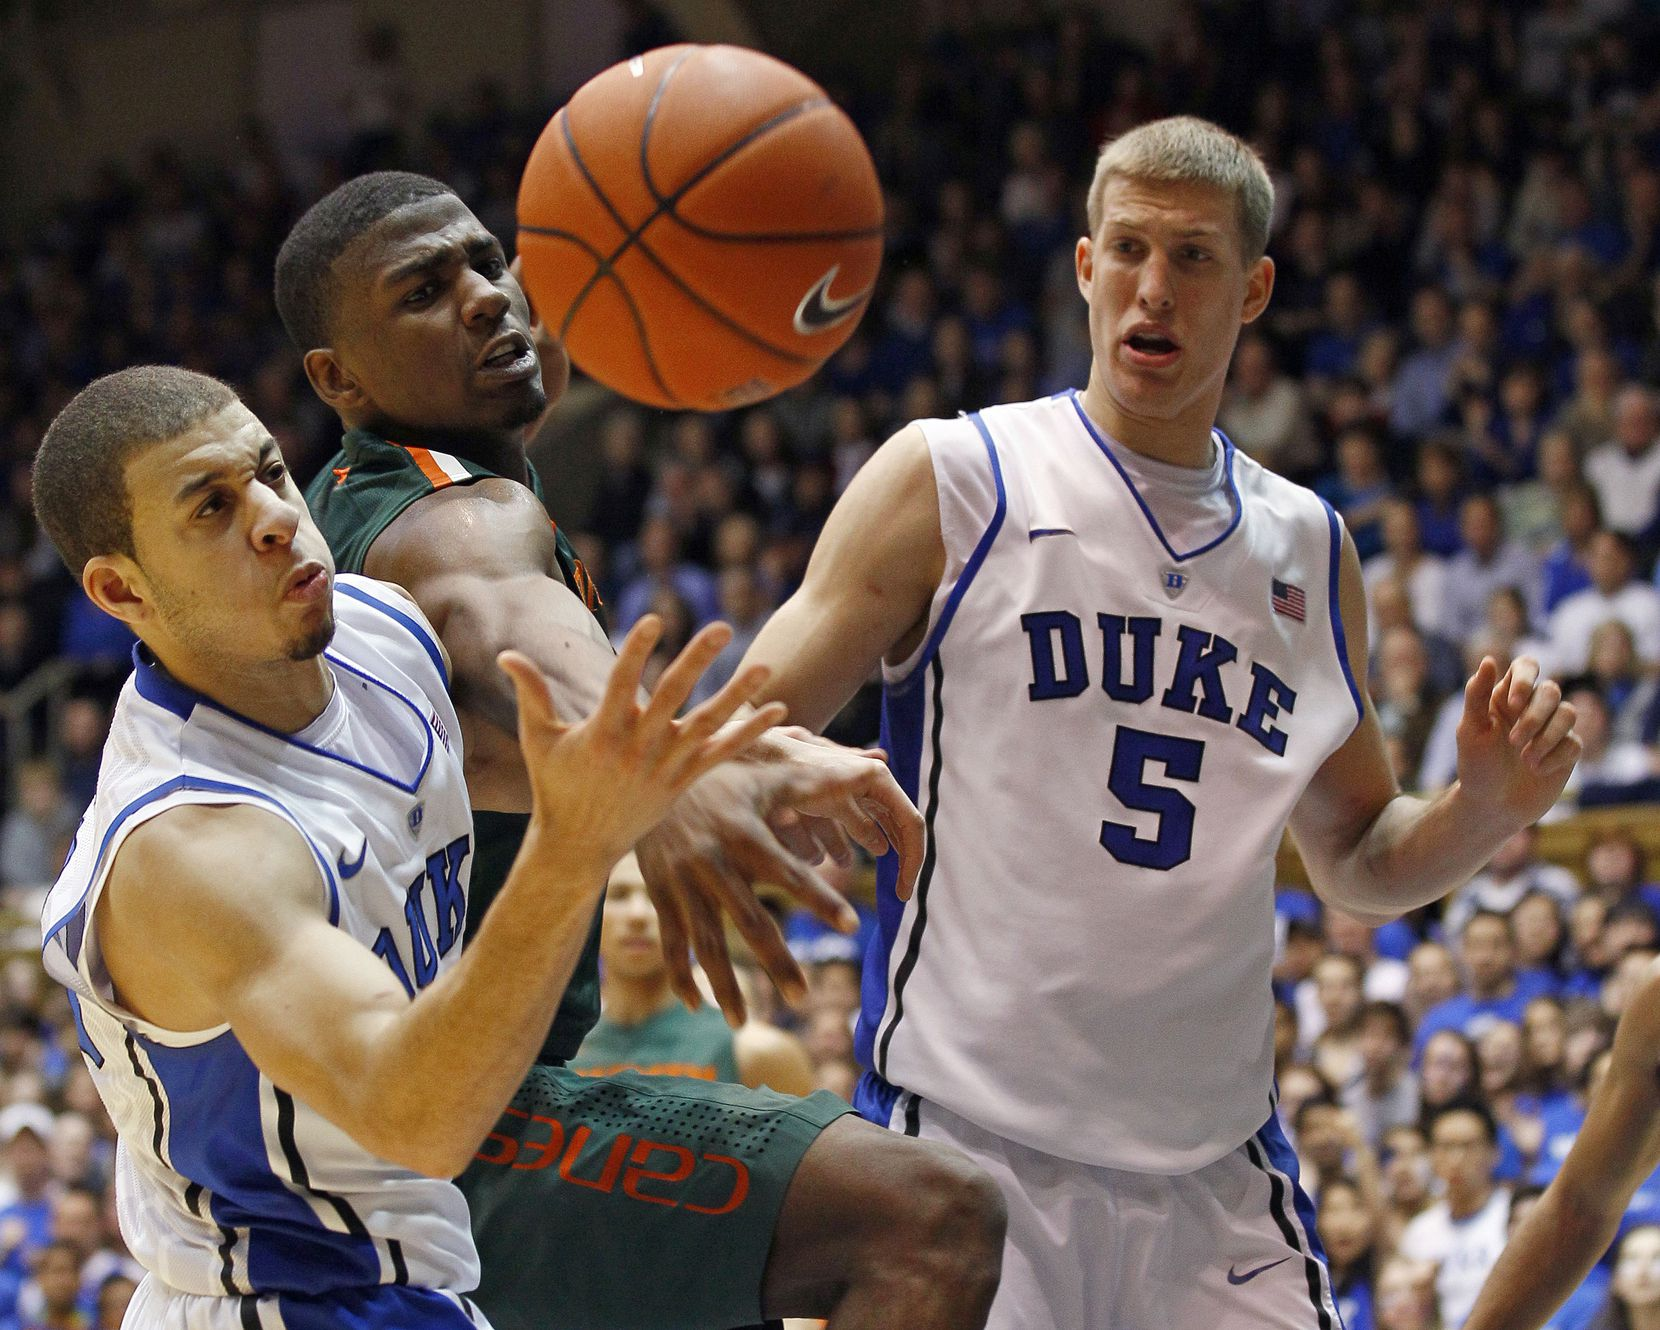 Duke's Seth Curry, left, and Mason Plumlee (5) struggle for a rebound against Miami's DeQuan Jones during the second half  of an NCAA college basketball game in Durham, N.C., Sunday, Feb. 5, 2012. Miami won 78-74 in overtime. (AP Photo/Gerry Broome)